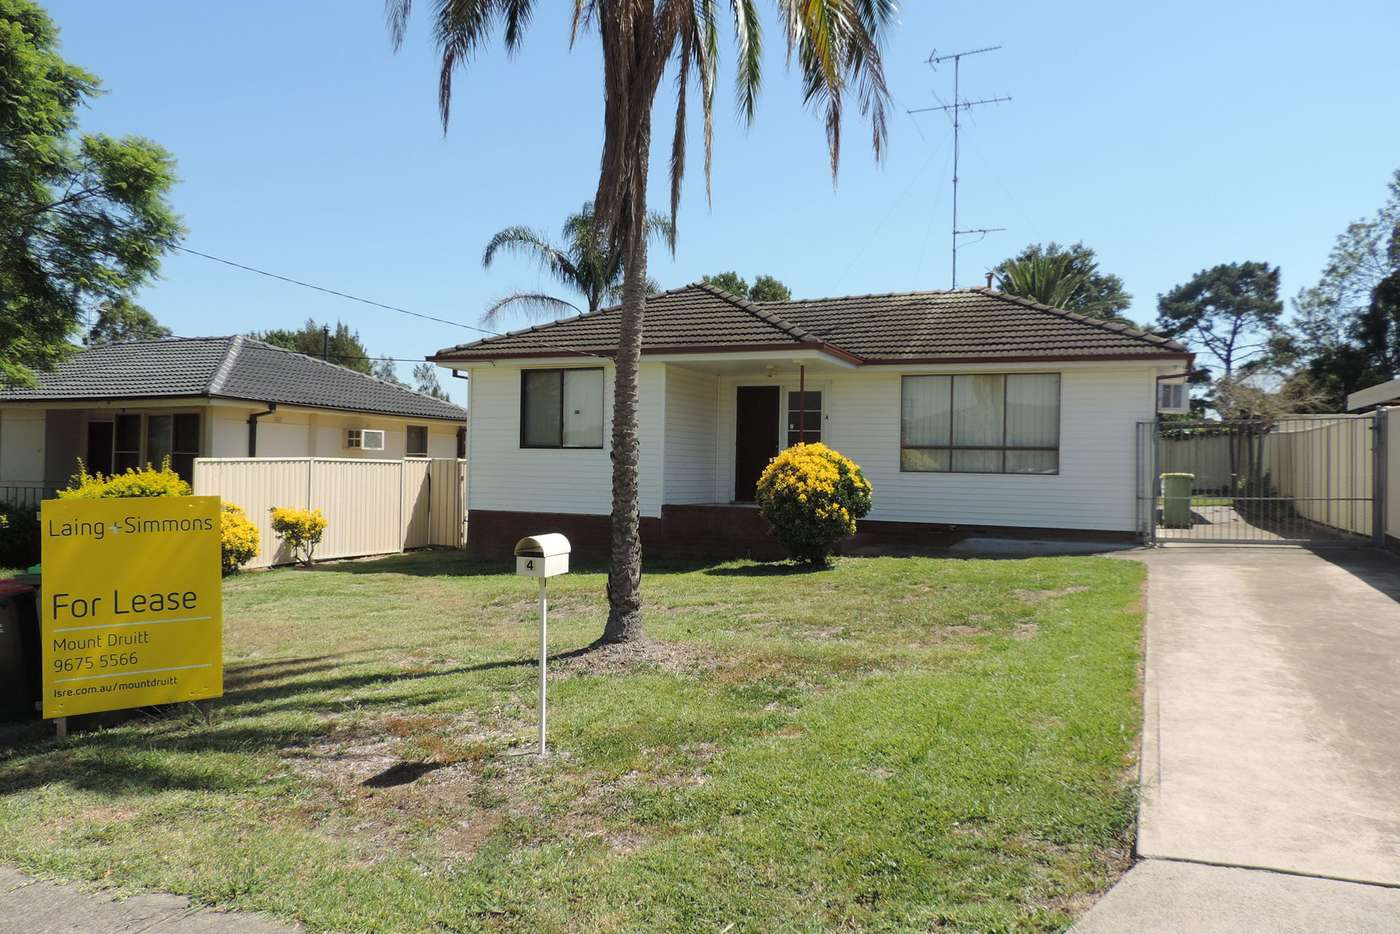 Main view of Homely house listing, 4 Blain Street, Toongabbie NSW 2146